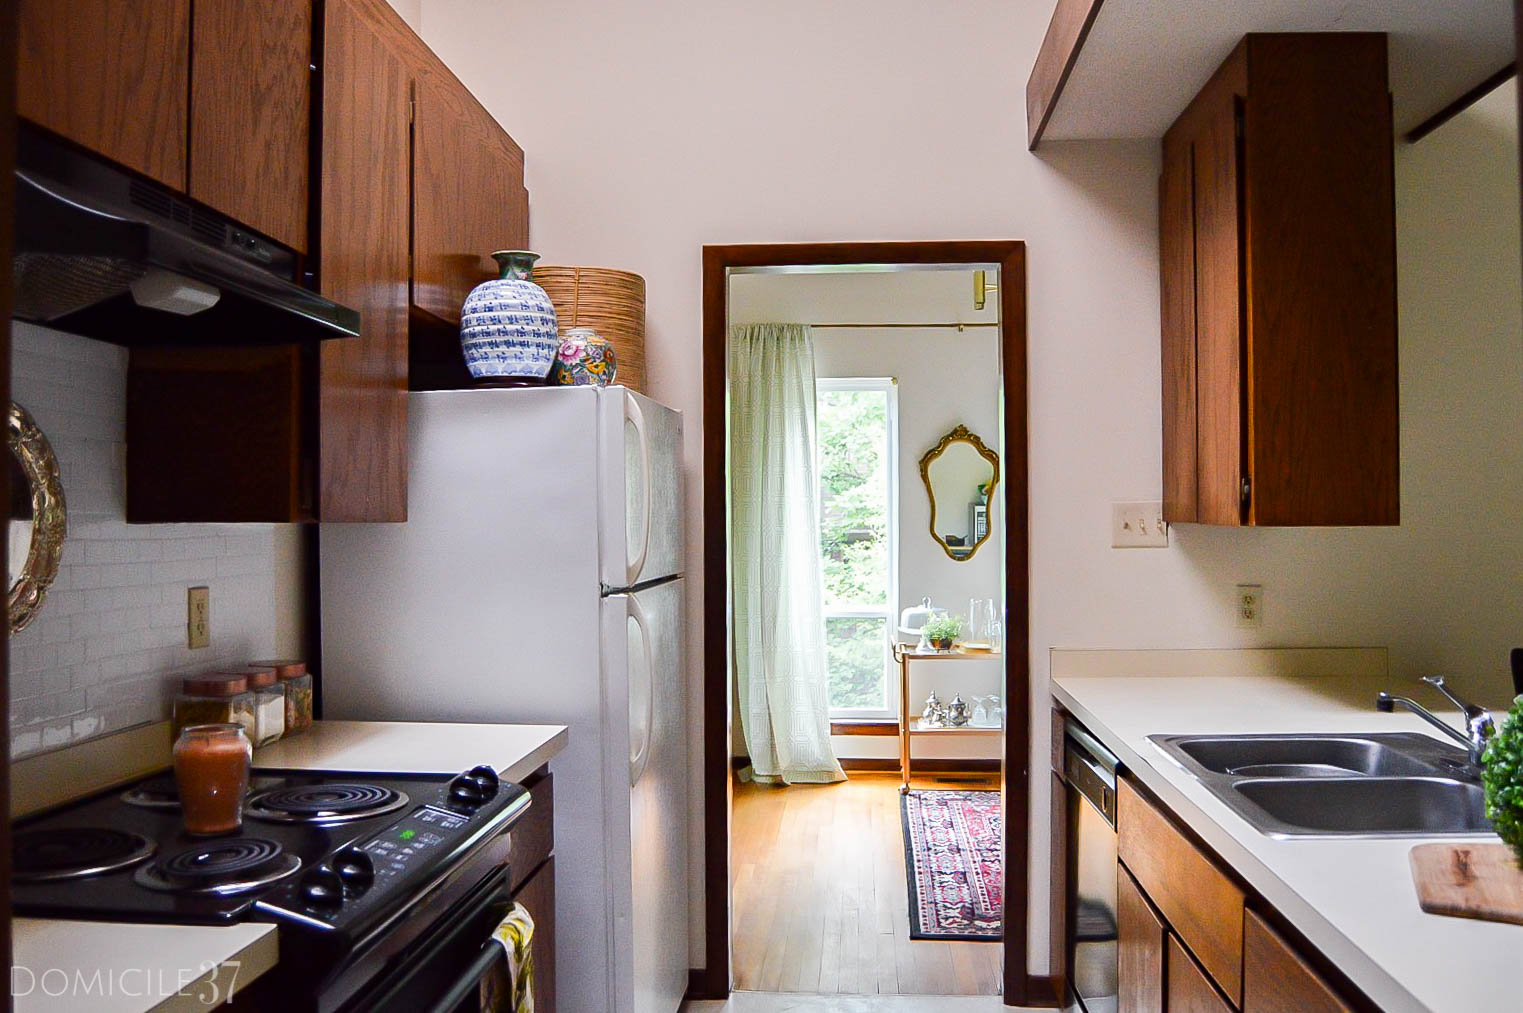 5 inexpensive ways to upgrade your rental | Rental living on a budget | rental kitchen | decorating your rental kitchen | rental living | clutter free kitchen | rental kitchen decor